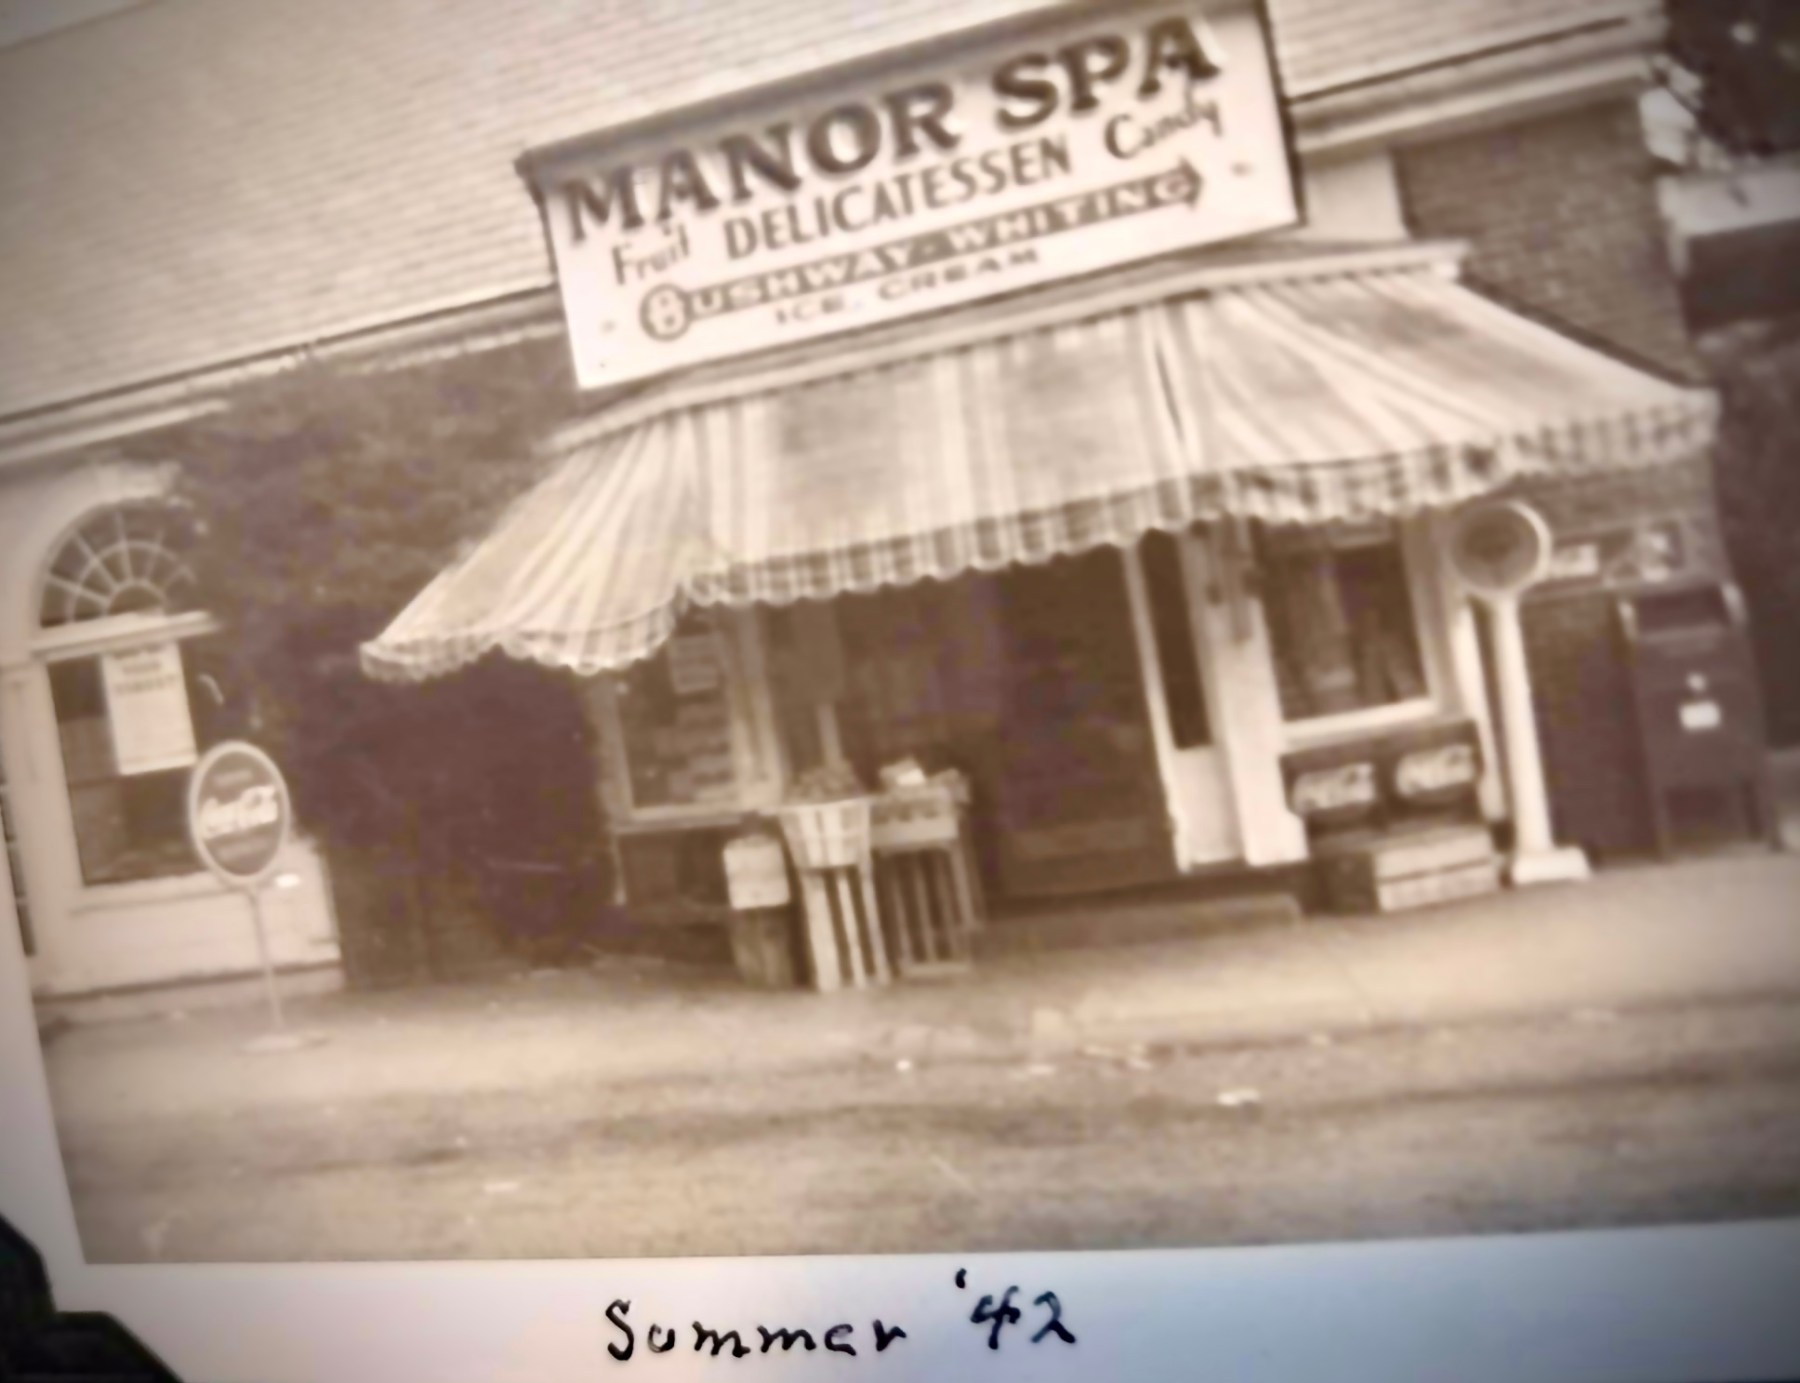 Manor Spa, 269 Bedford Street, Lexington